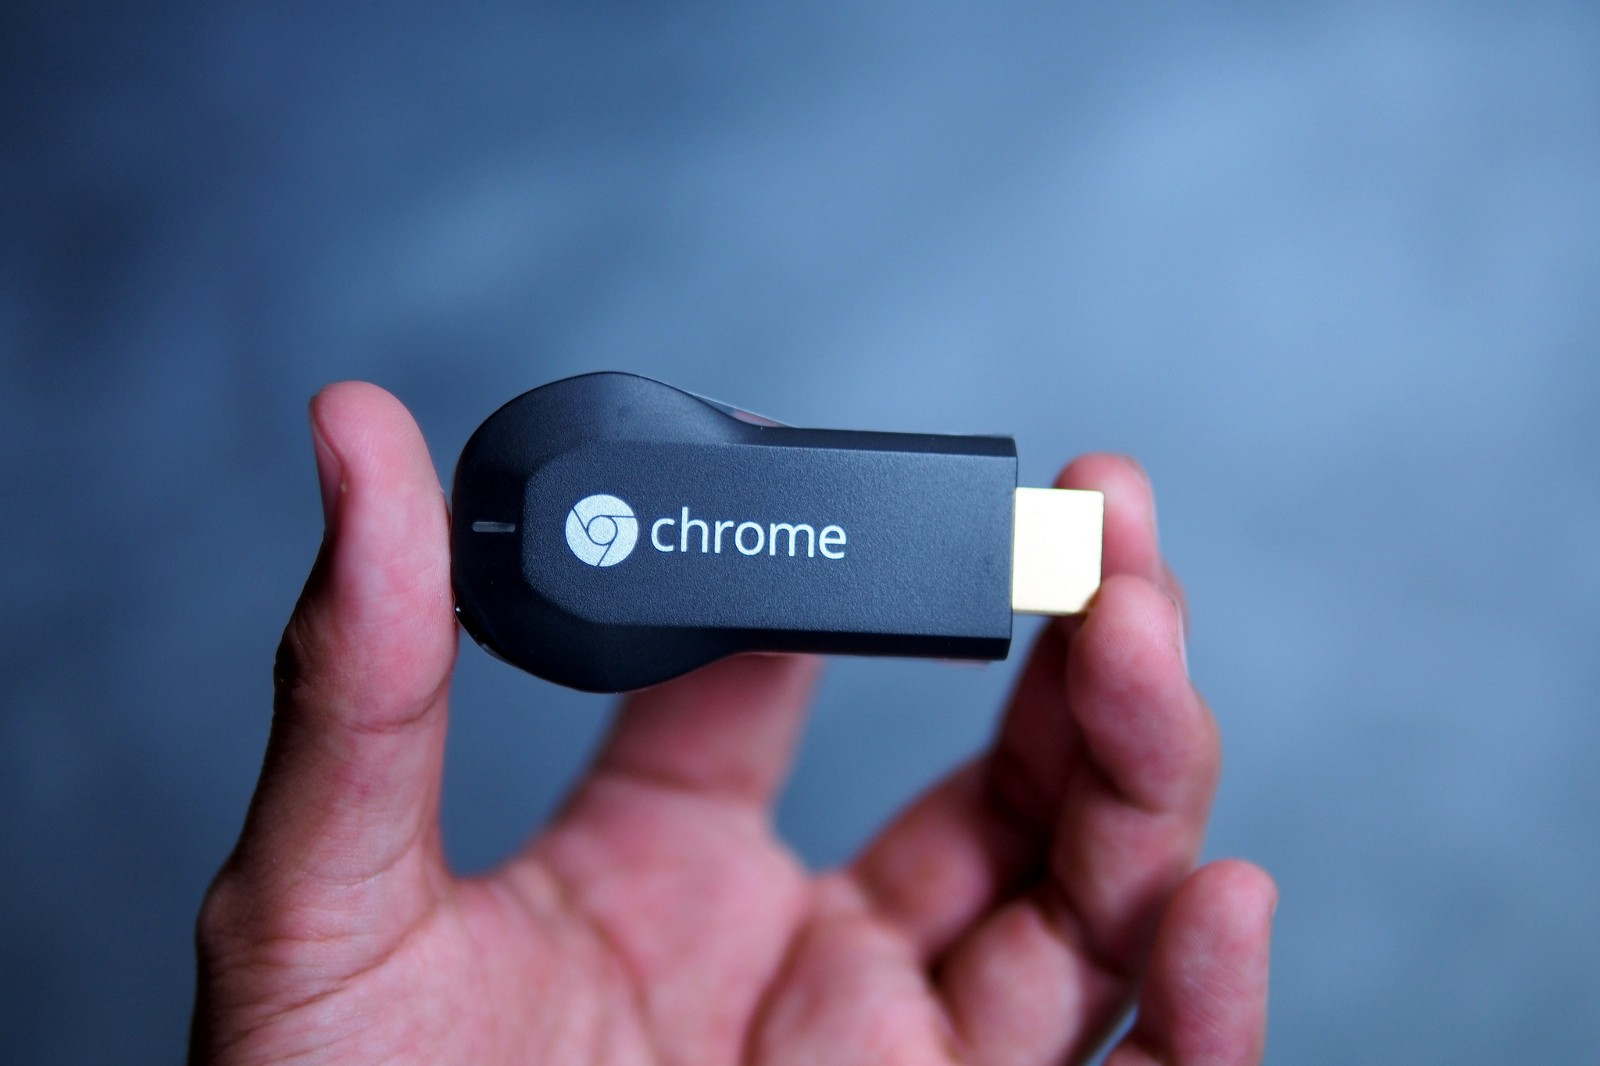 Changing the Chromecast icon color by styling MediaRouteButton